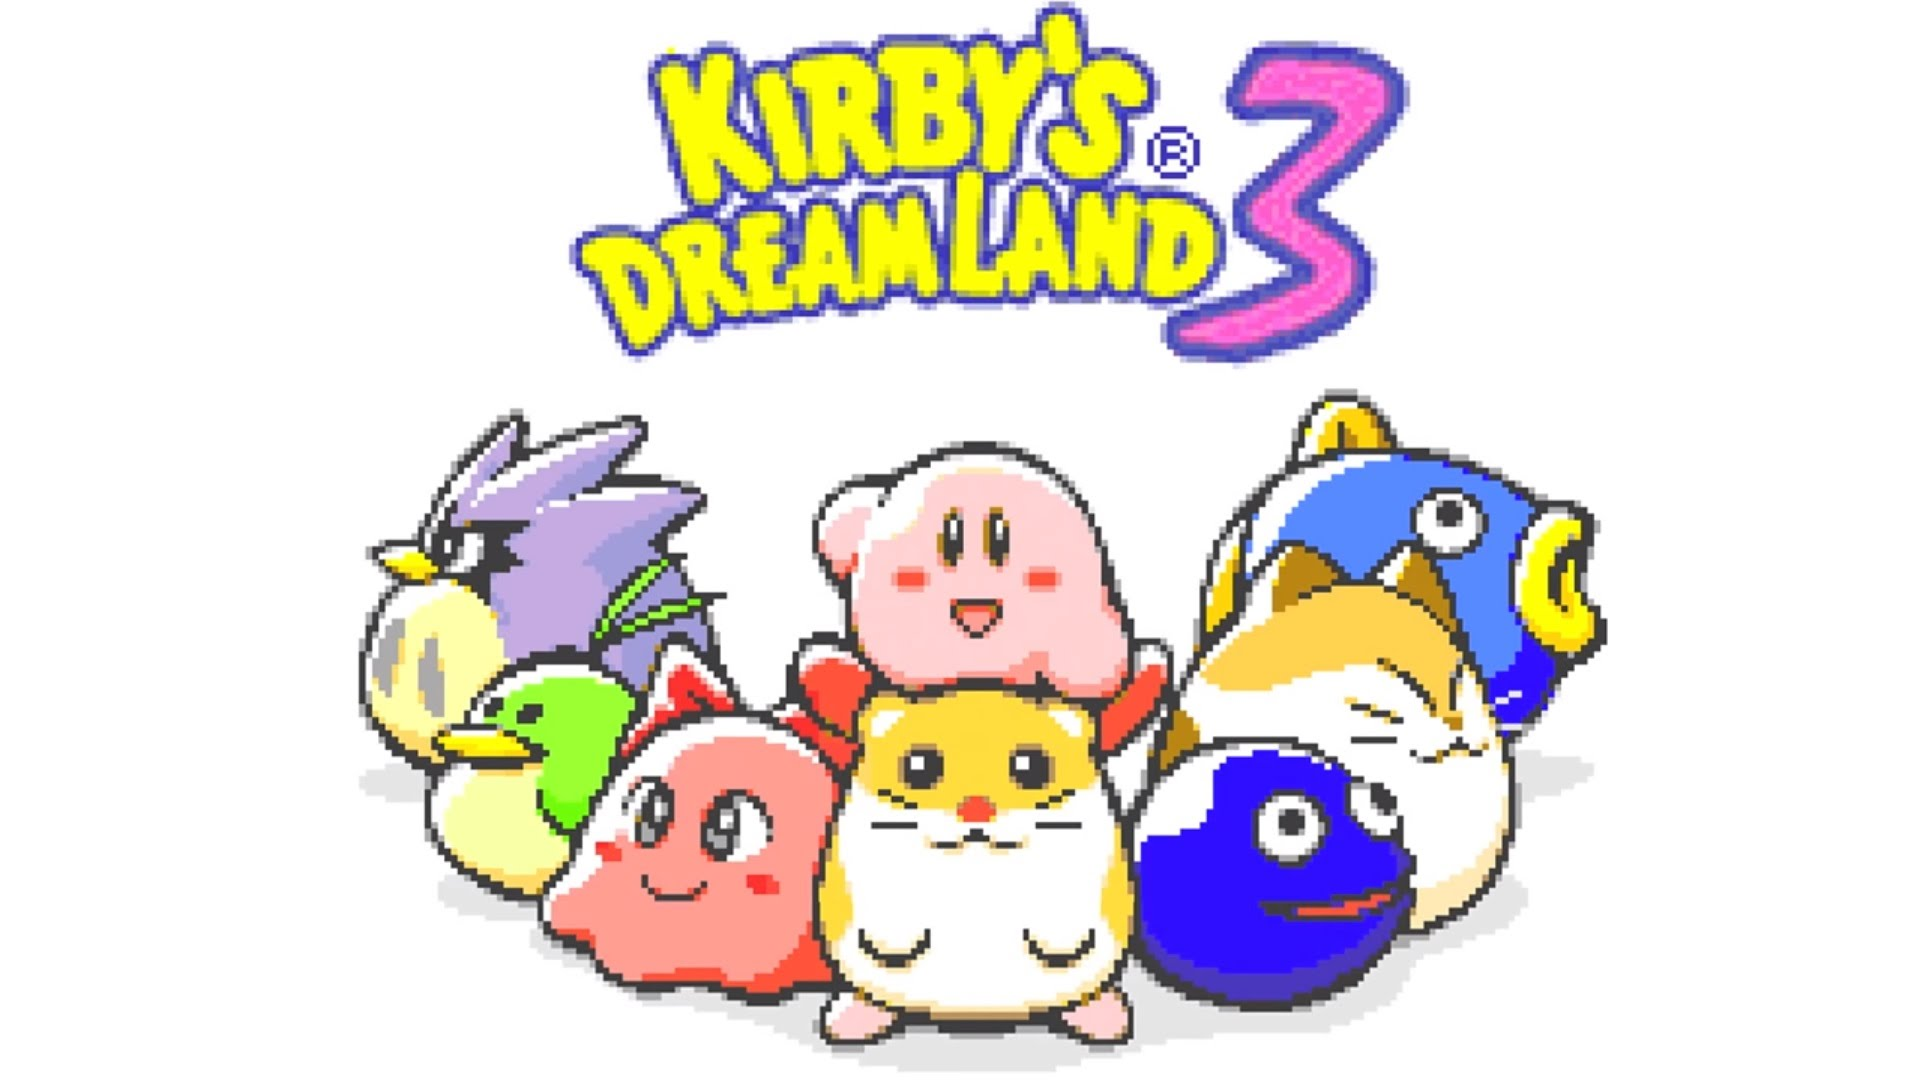 Cloudy Park - Kirby's Dream Land 3